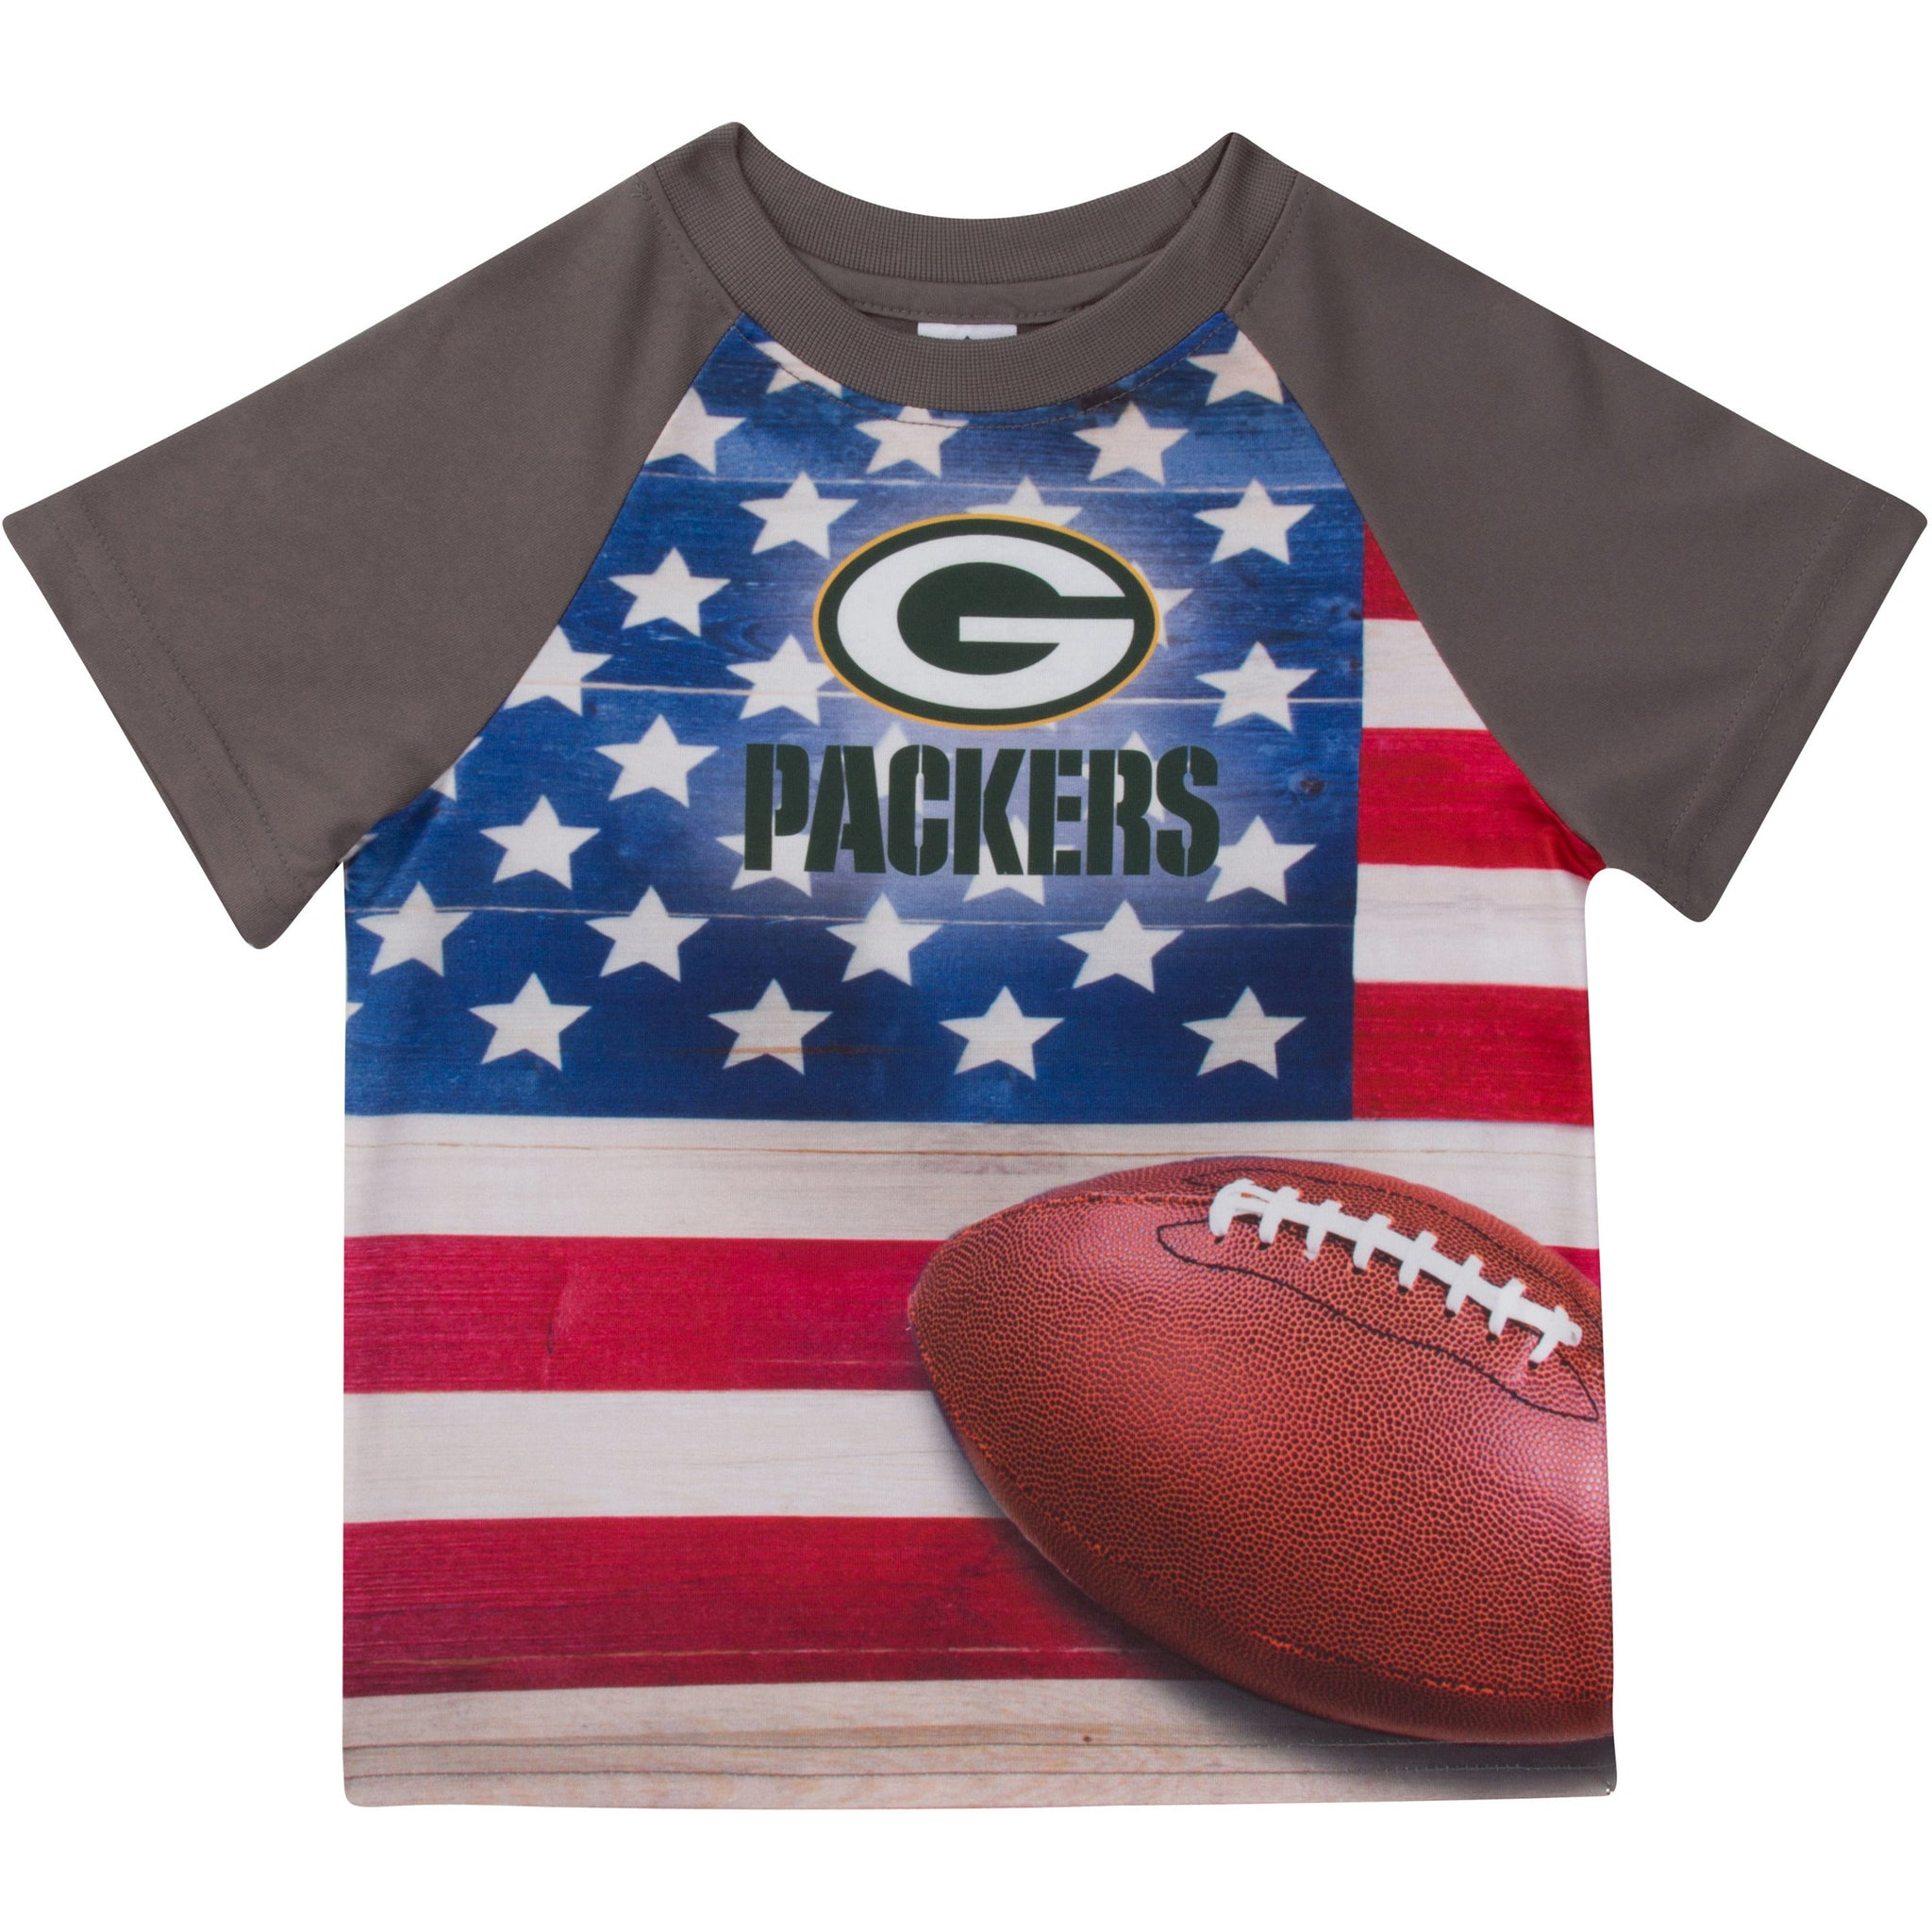 Green Bay Packers Boys Short Sleeve Tee Shirt